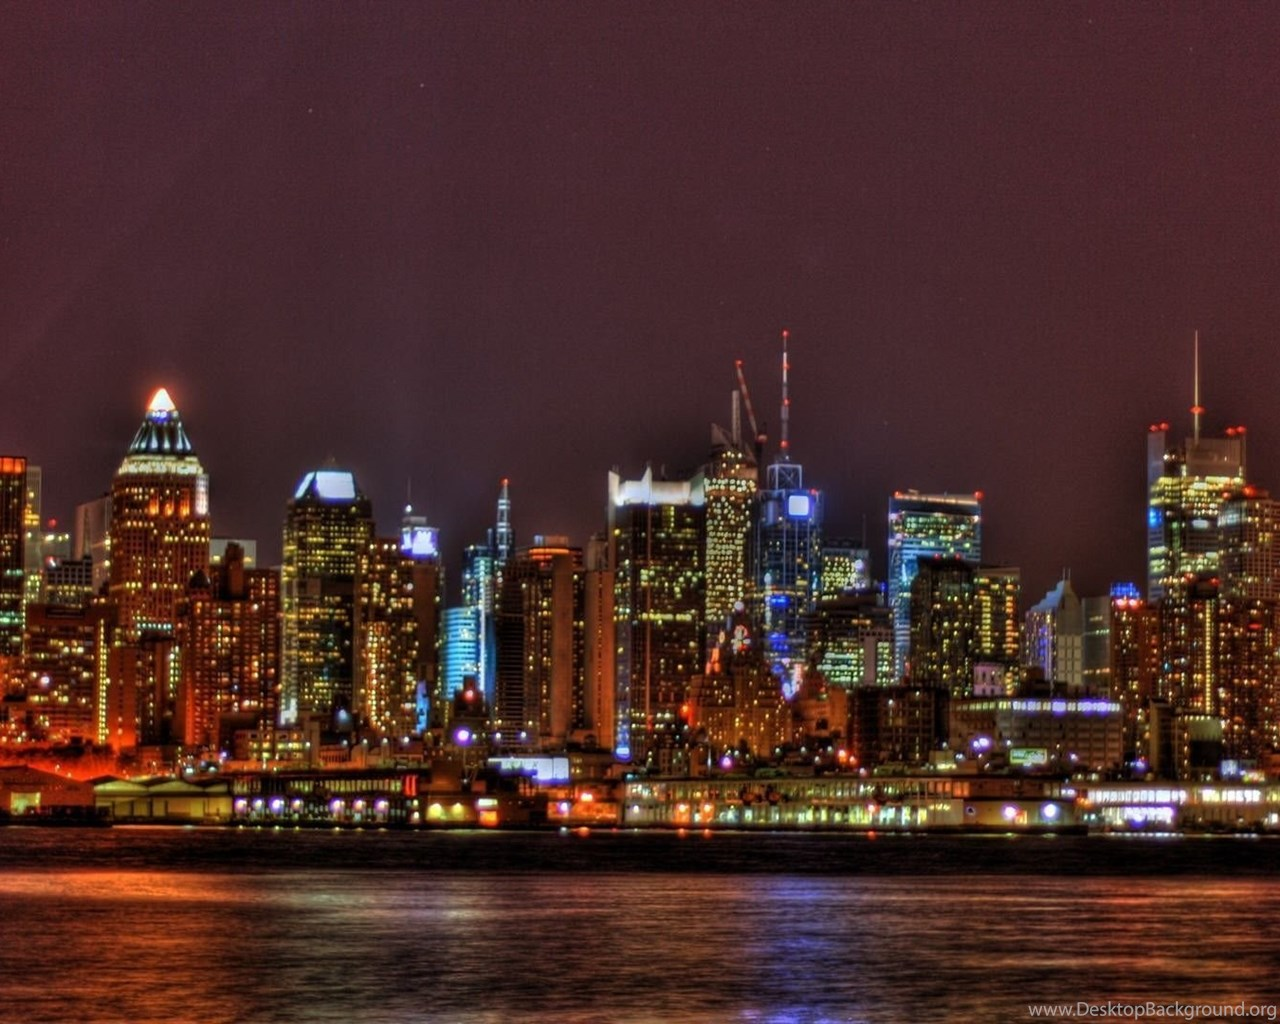 Skyline Of New York City Wallpapers Free Desktop Background